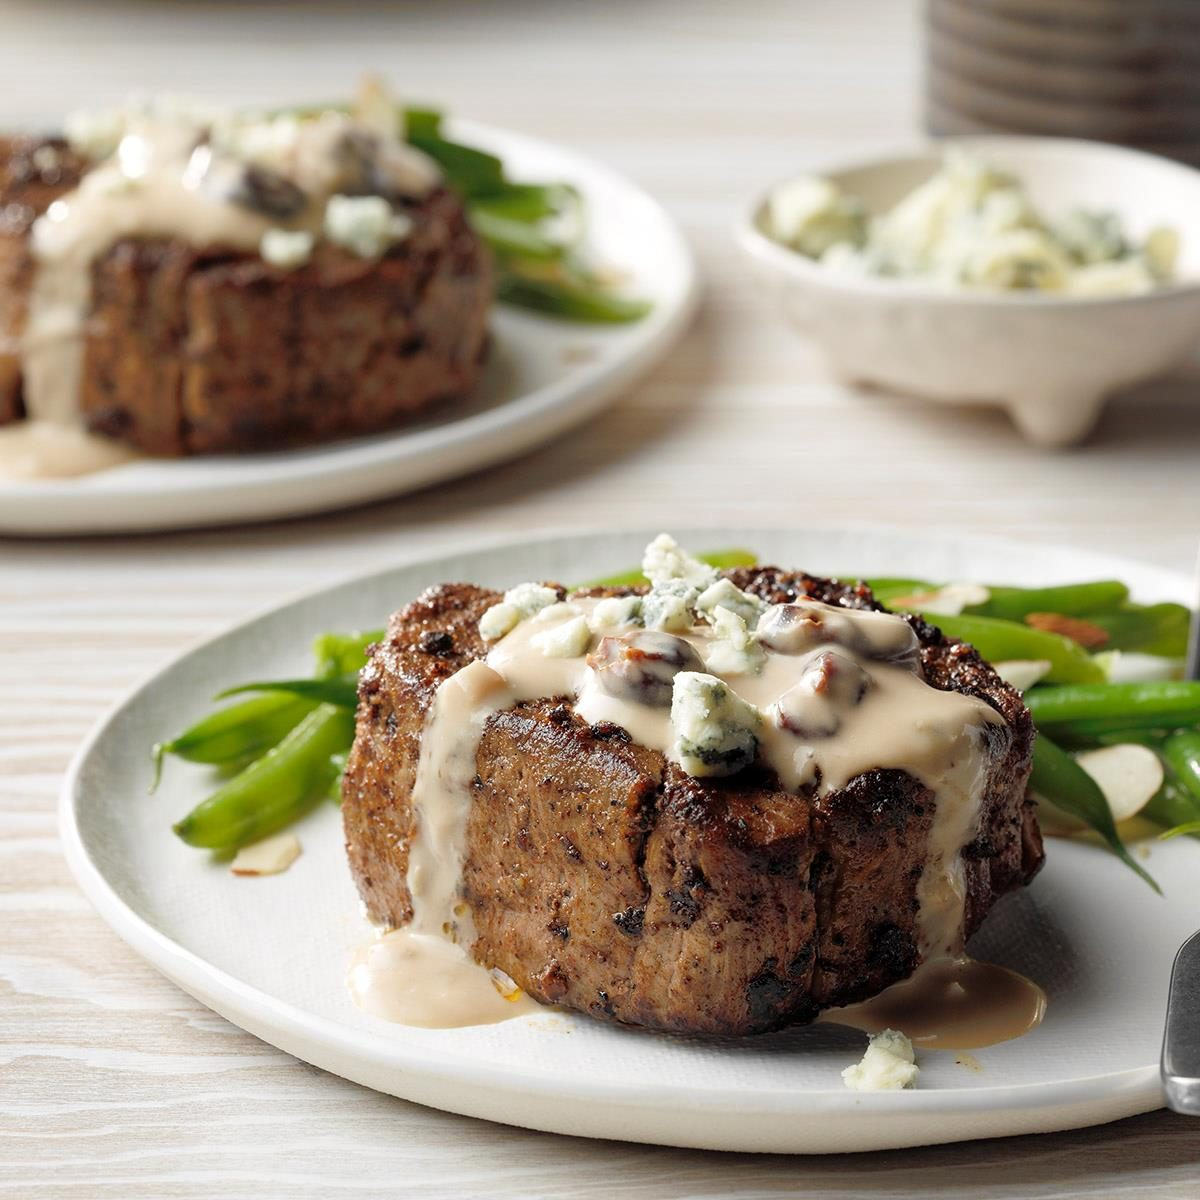 Spice-Crusted Steaks with Cherry Sauce